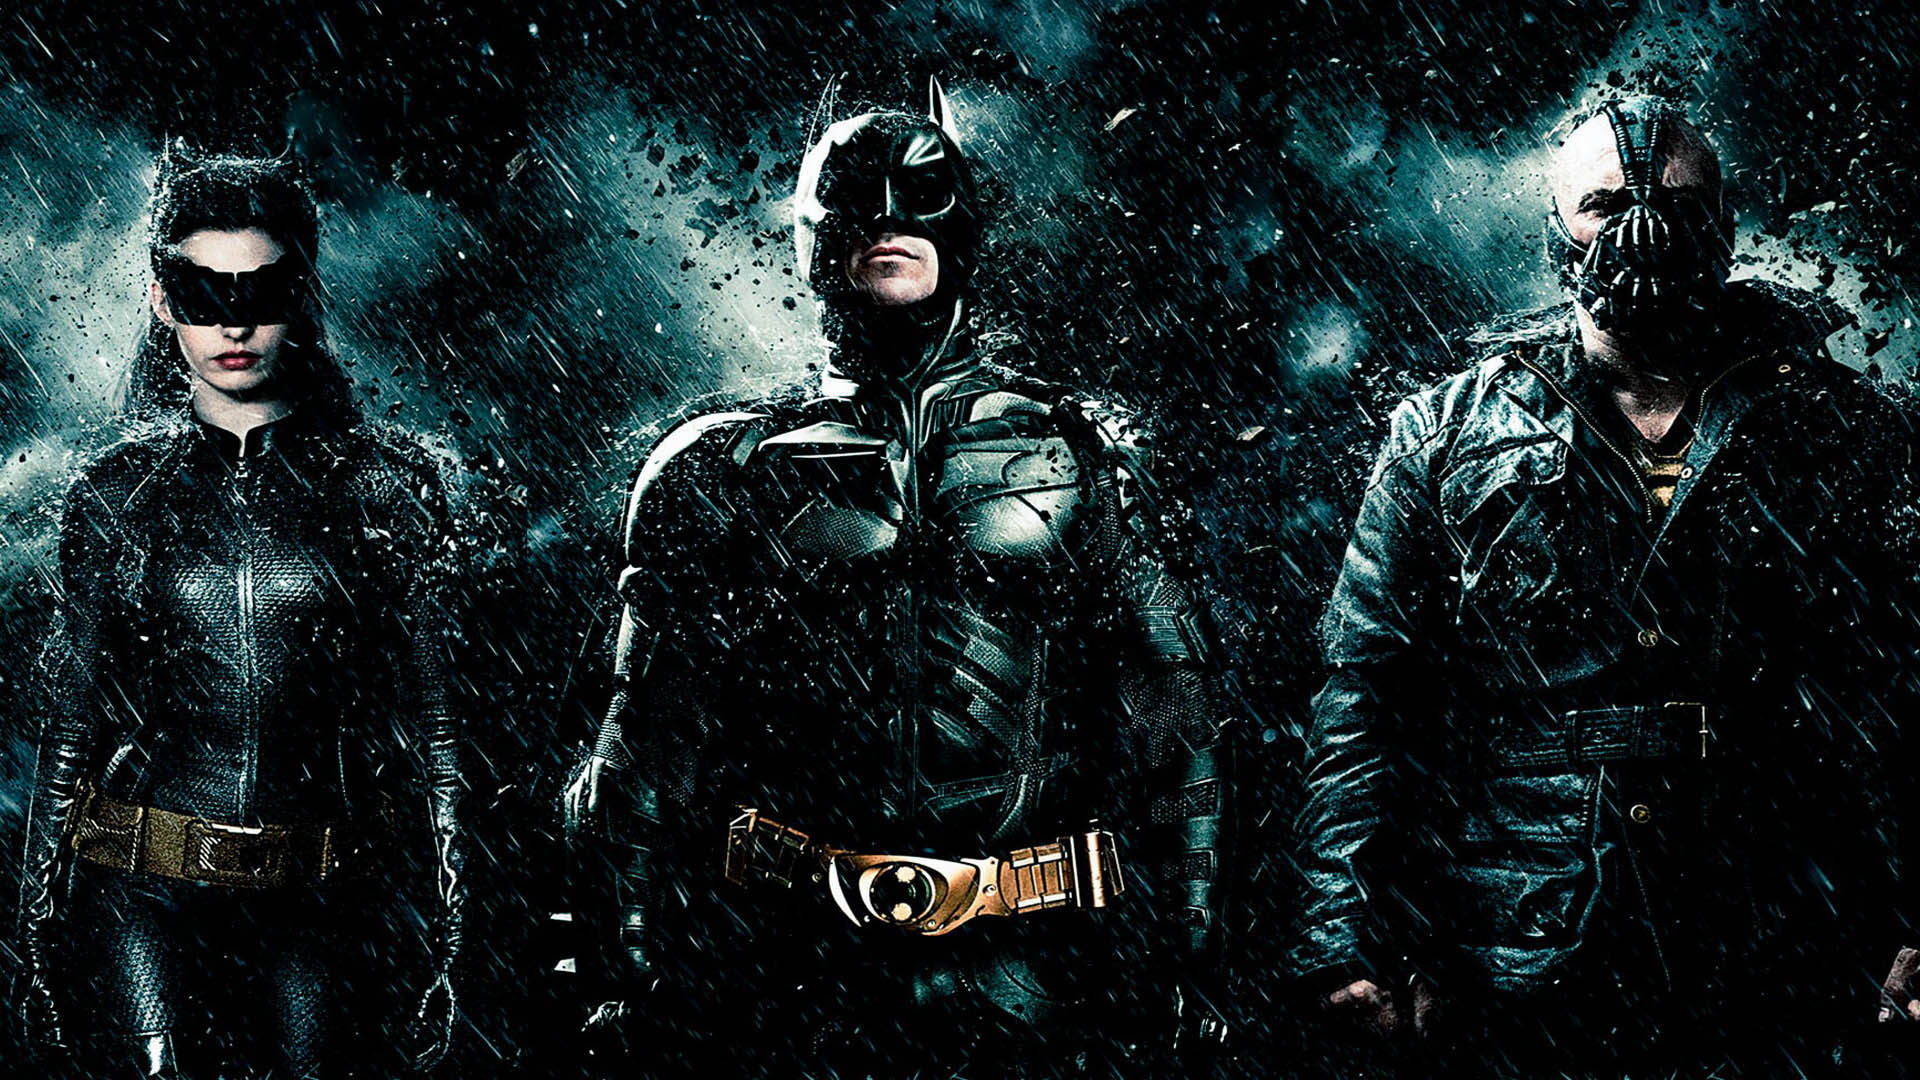 download the dark knight rises full movie free